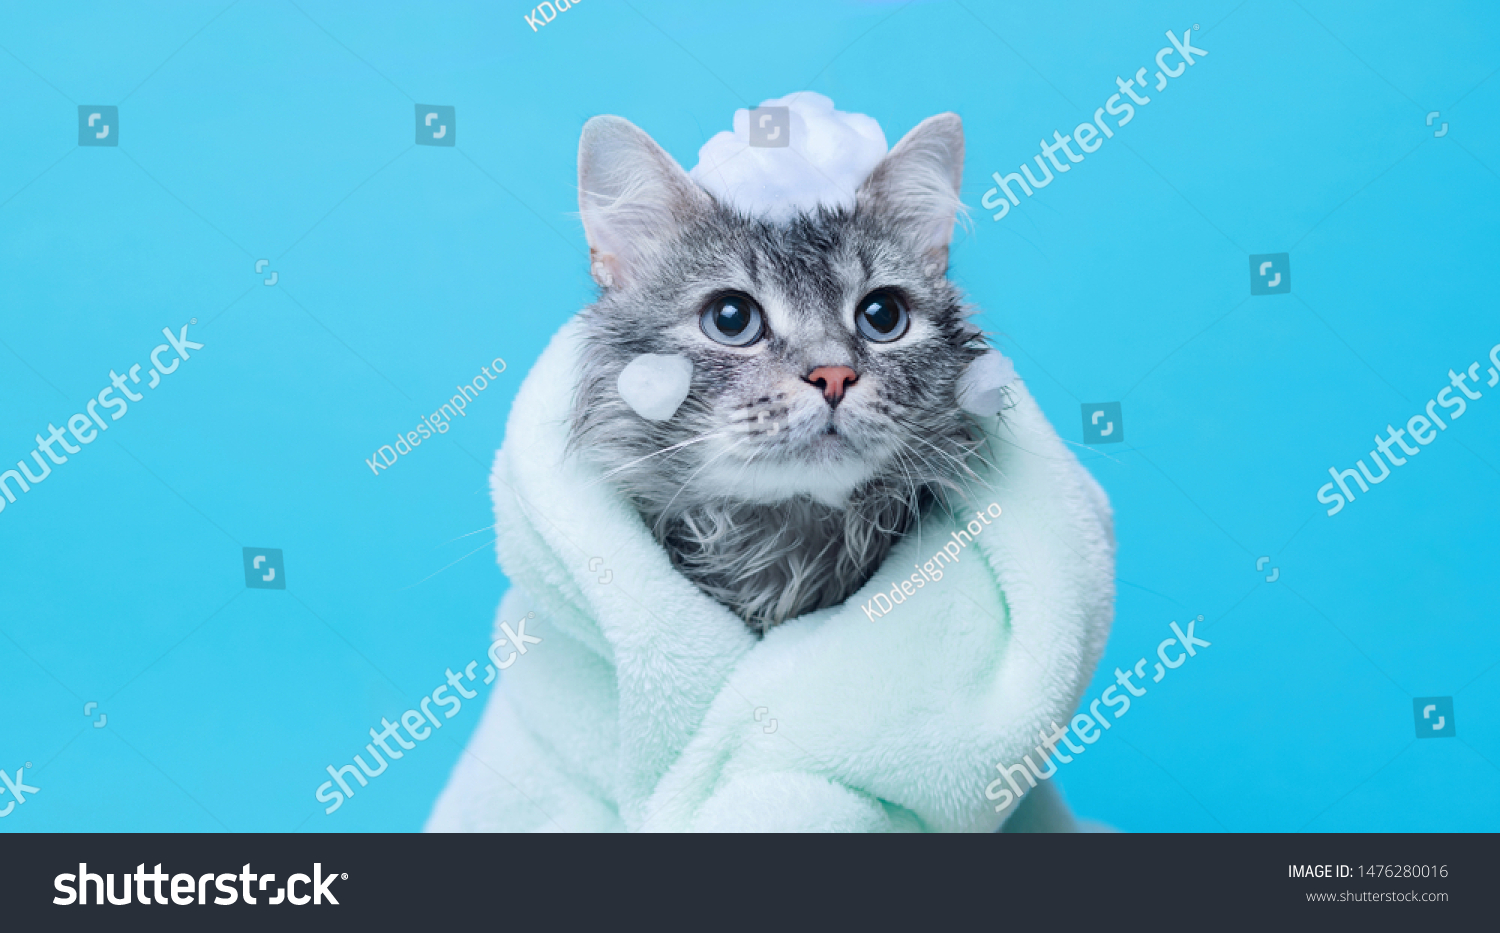 Funny wet gray tabby cute kitten after bath wrapped in green towel with big eyes. Just washed lovely fluffy cat with soap foam on his head on blue background. #1476280016